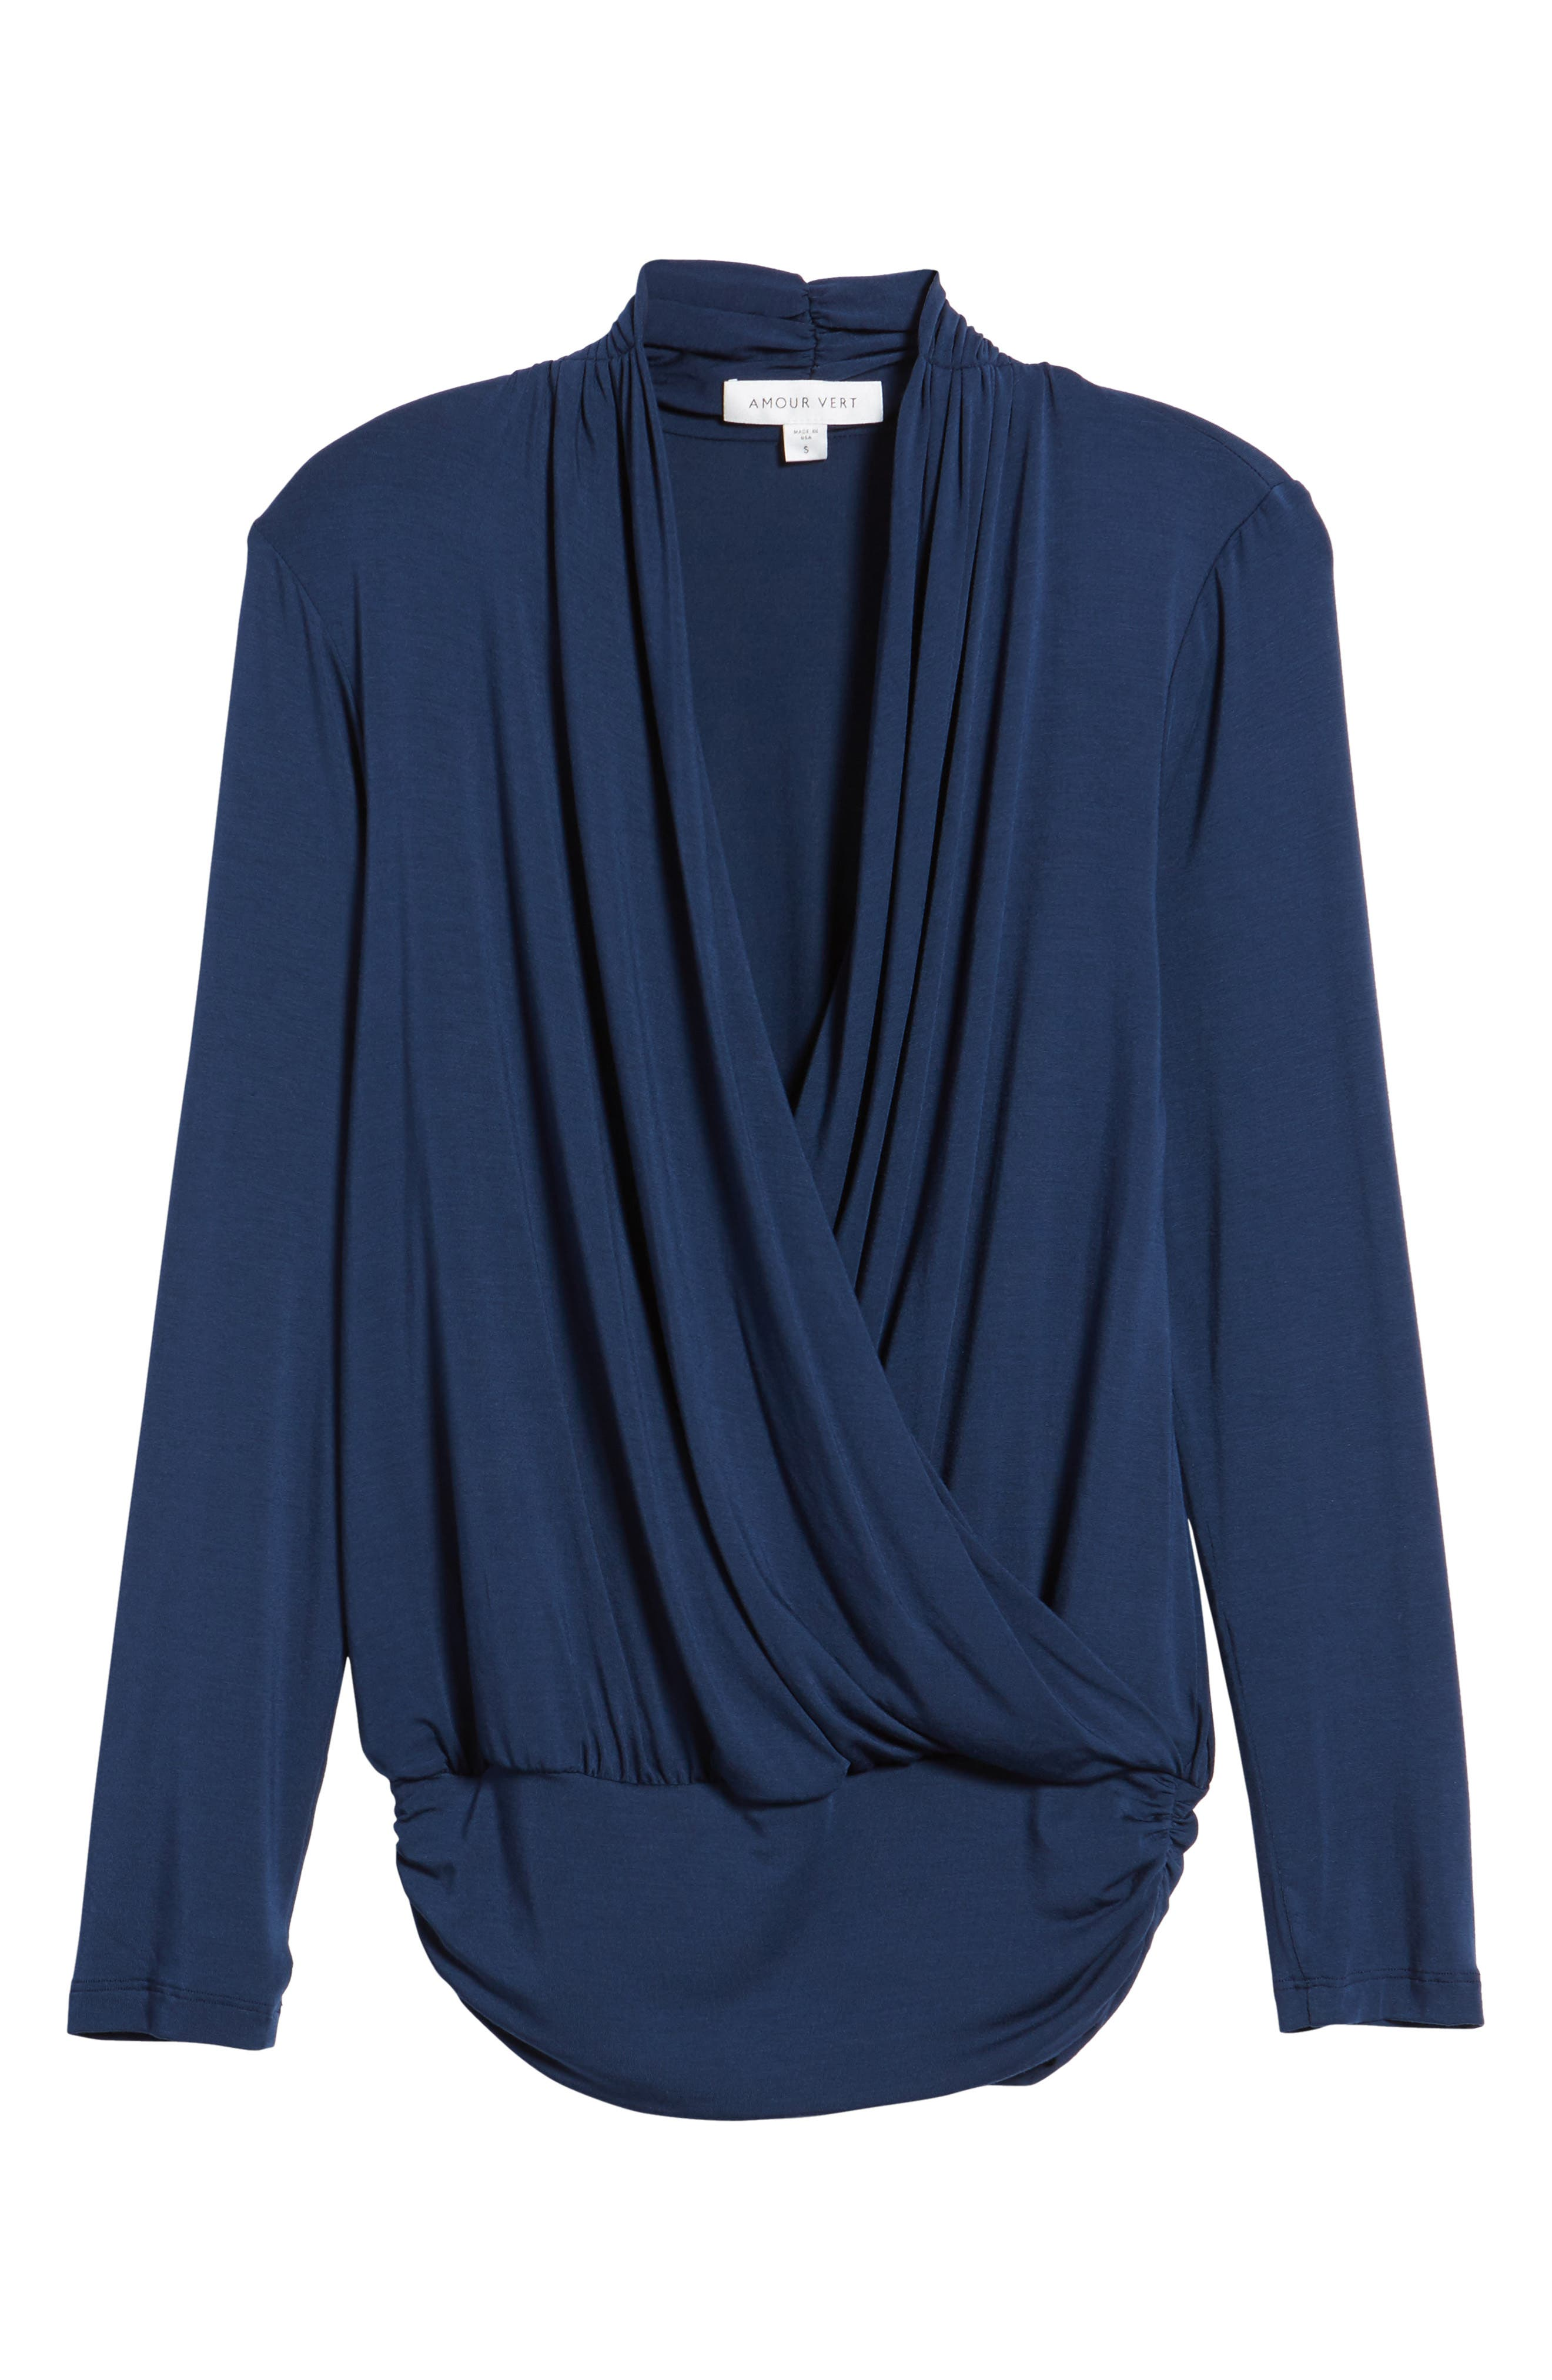 'Angela' Long Sleeve Wrap Front Top,                             Alternate thumbnail 6, color,                             450